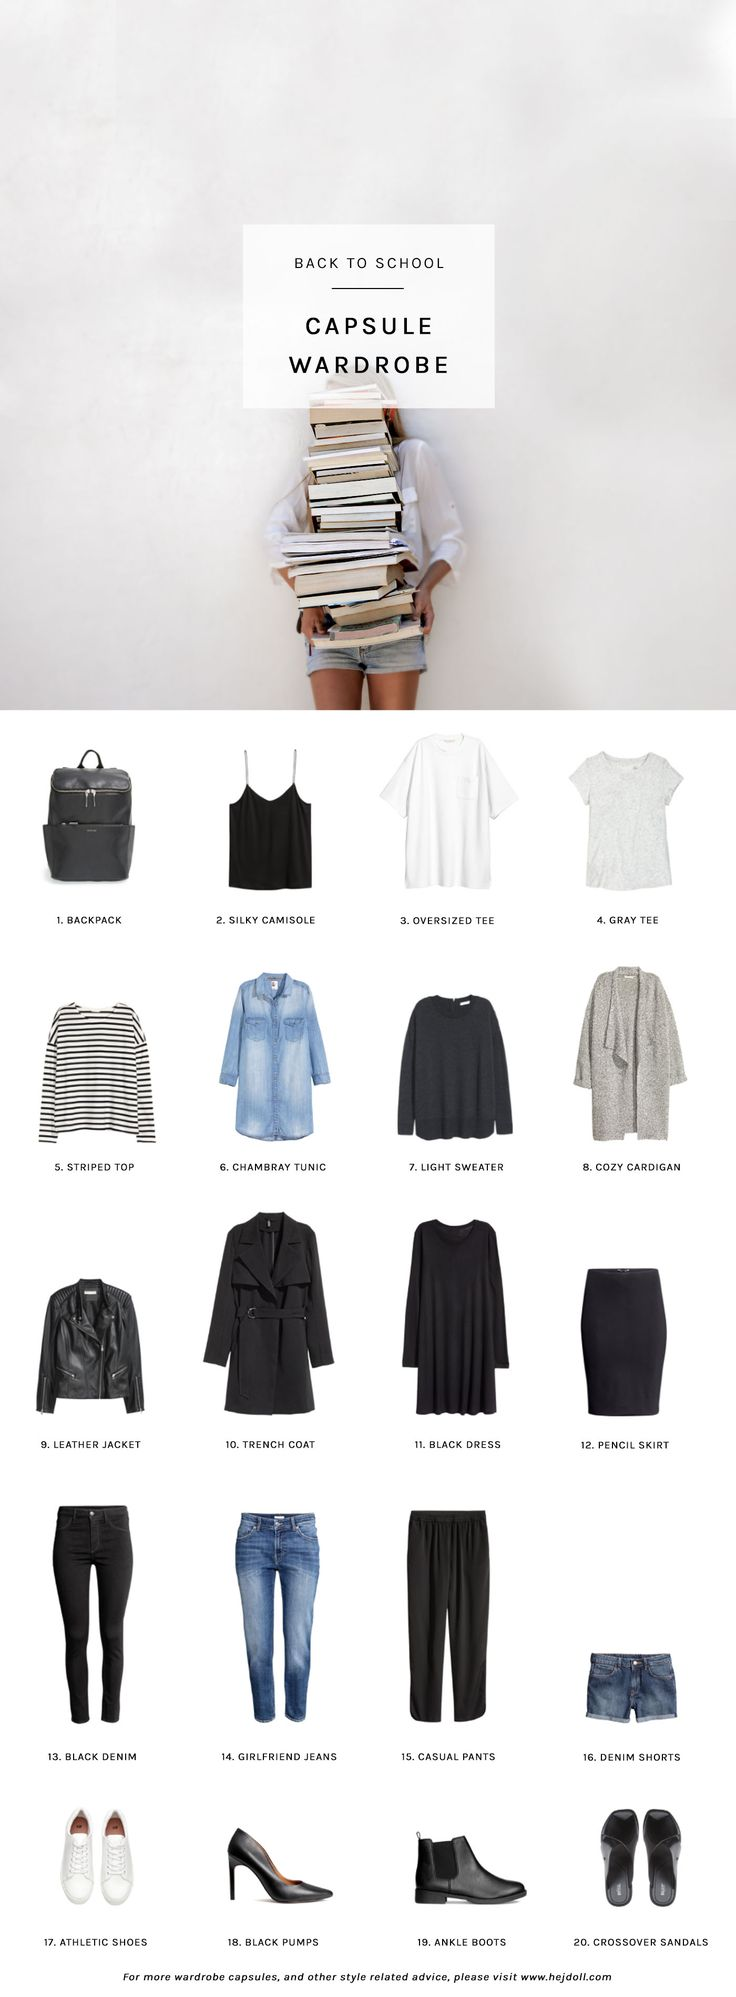 Back to School Capsule Wardrobe | hej doll | Bloglovin'